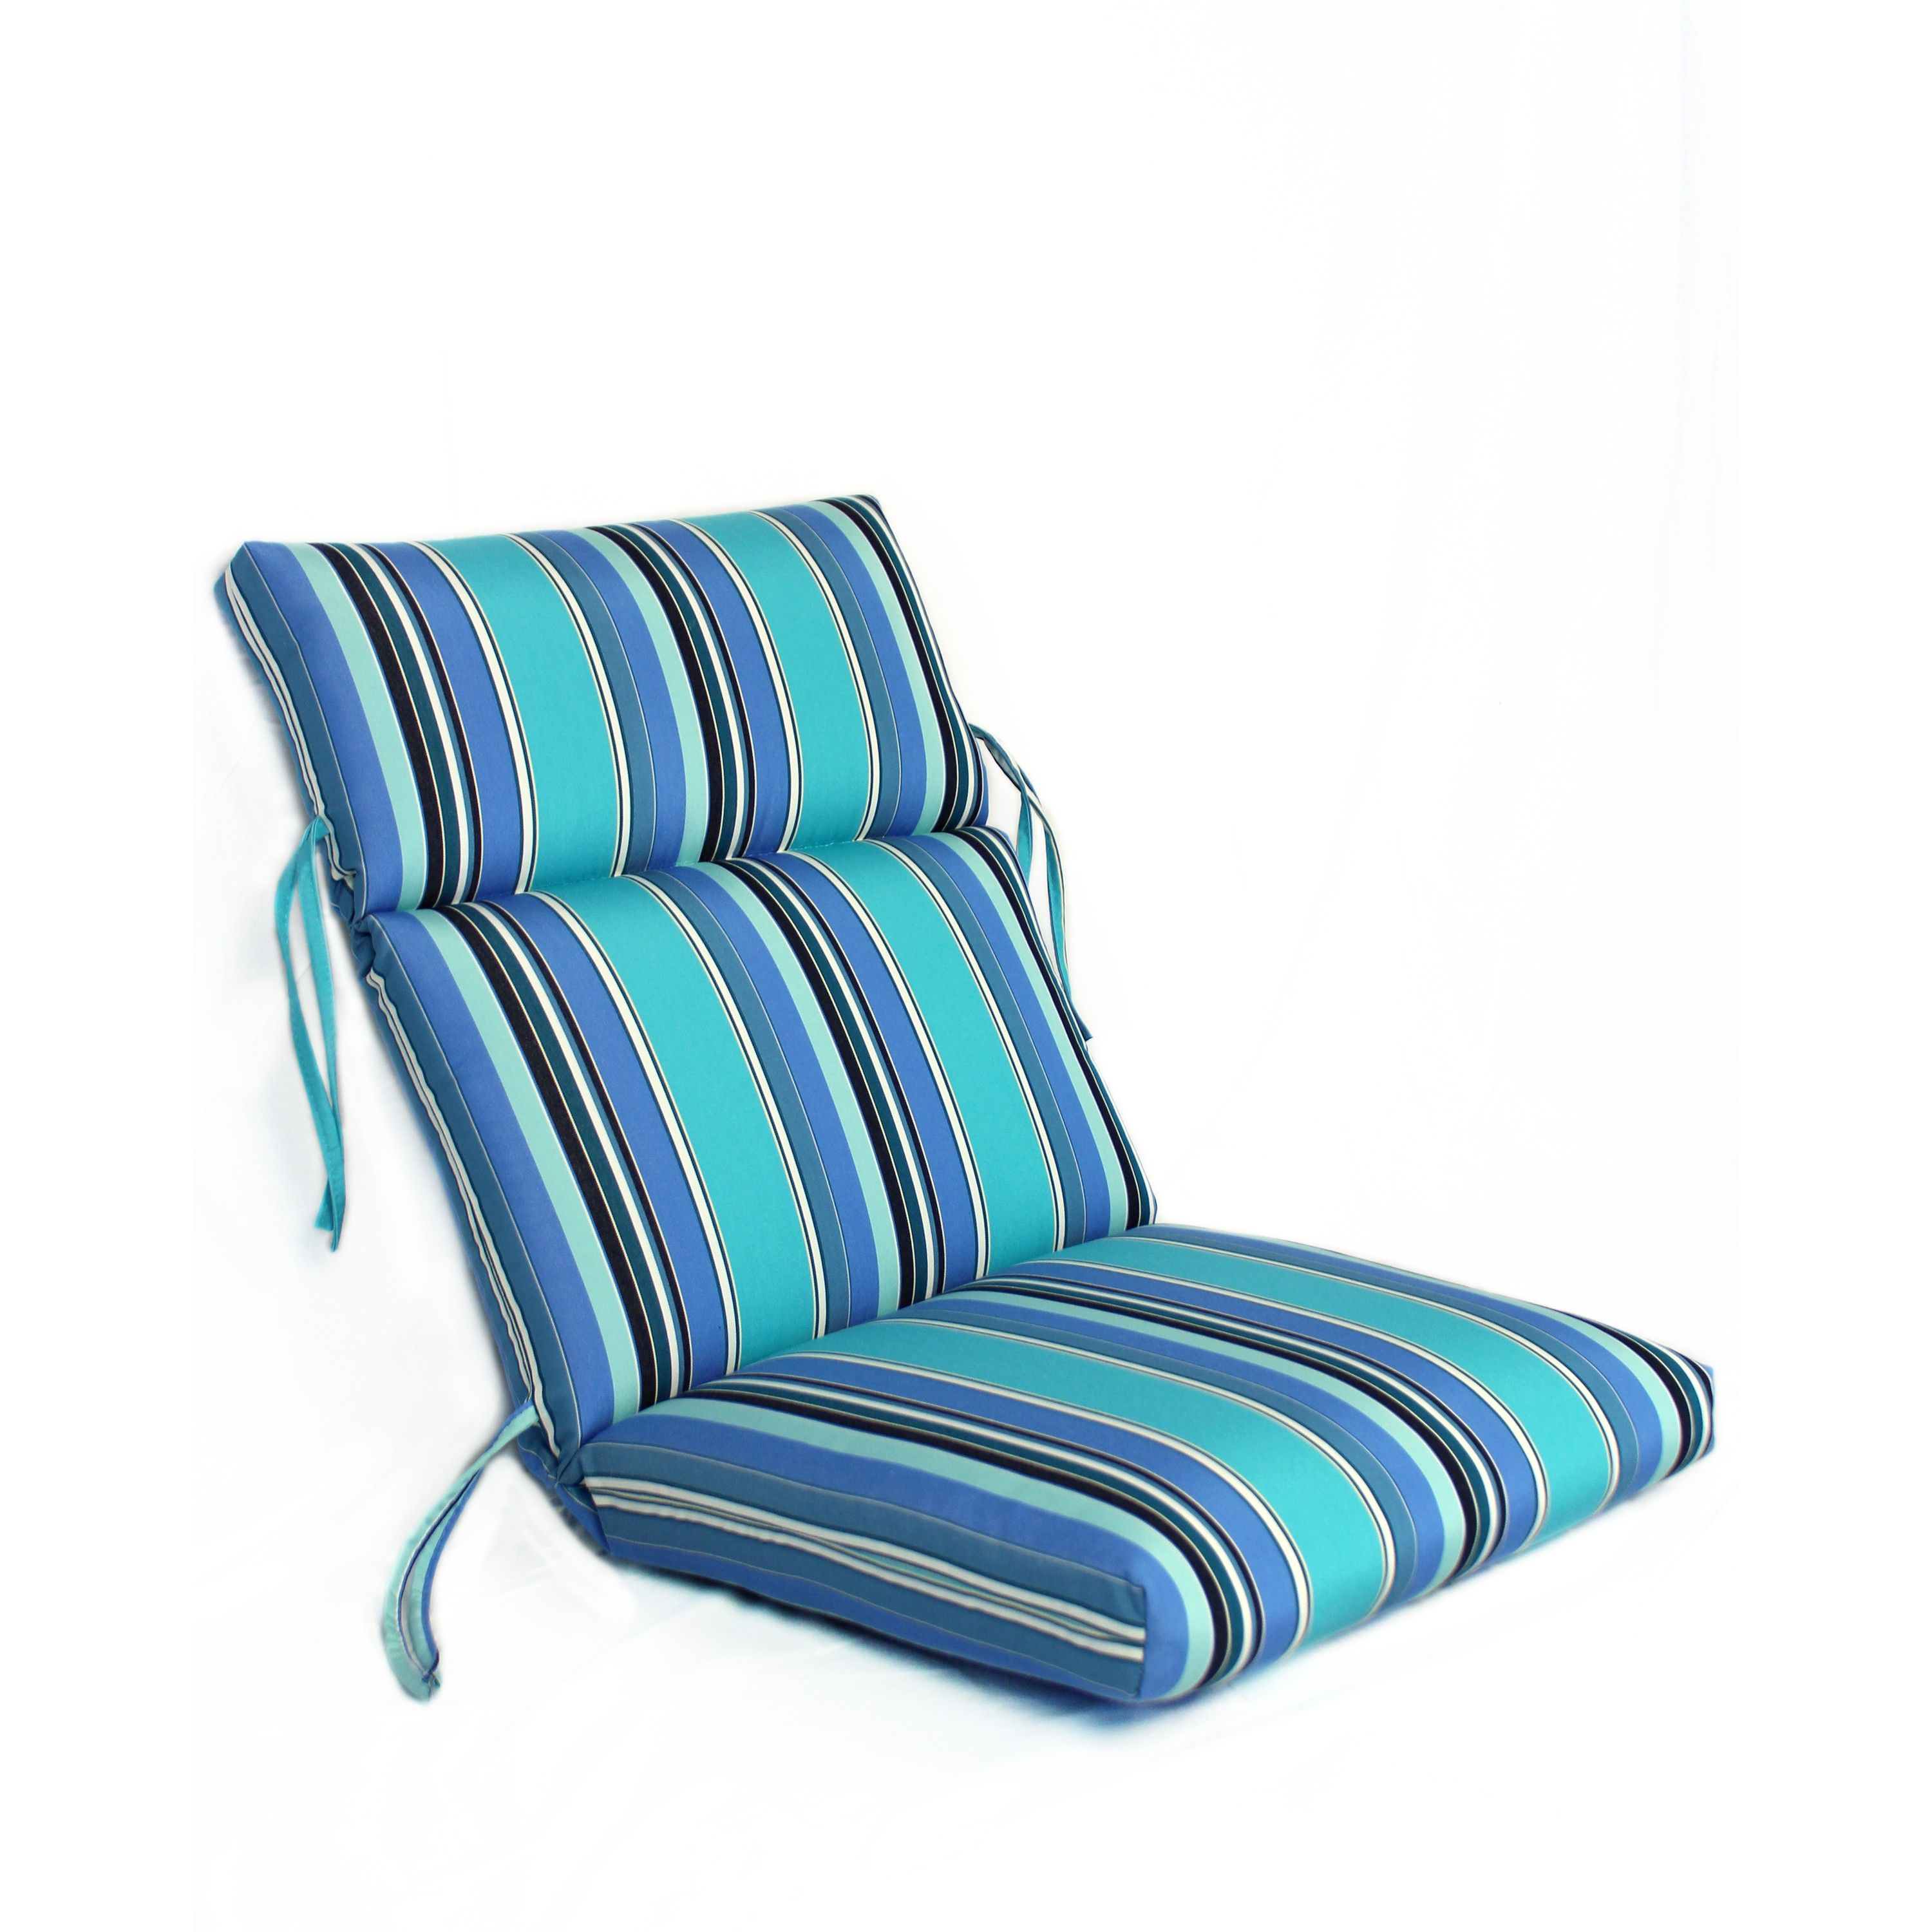 Turquoise lounge chair cushions productcreationlabs